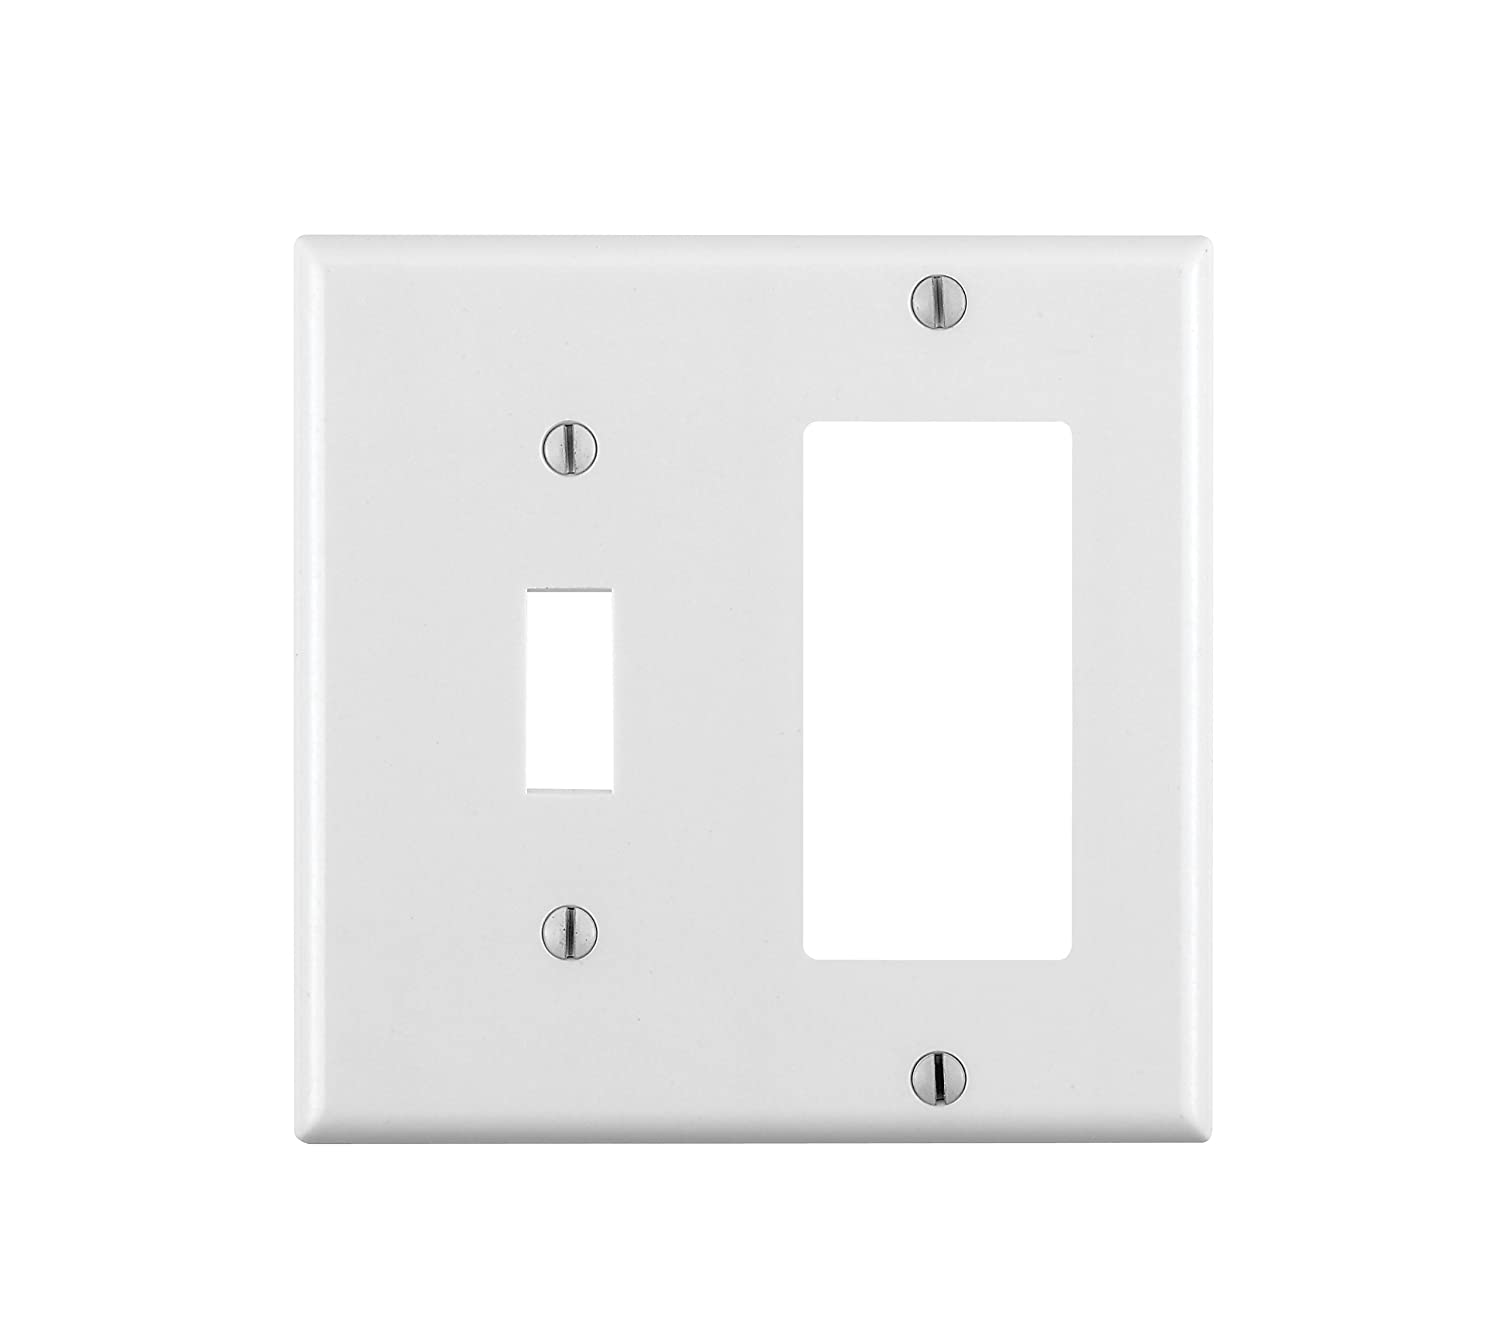 Leviton 80405-W 2-Gang 1-Toggle 1-Decora/GFCI Combination Wallplate, Standard Size, Thermoset, Device Mount, White, 1 Pack,